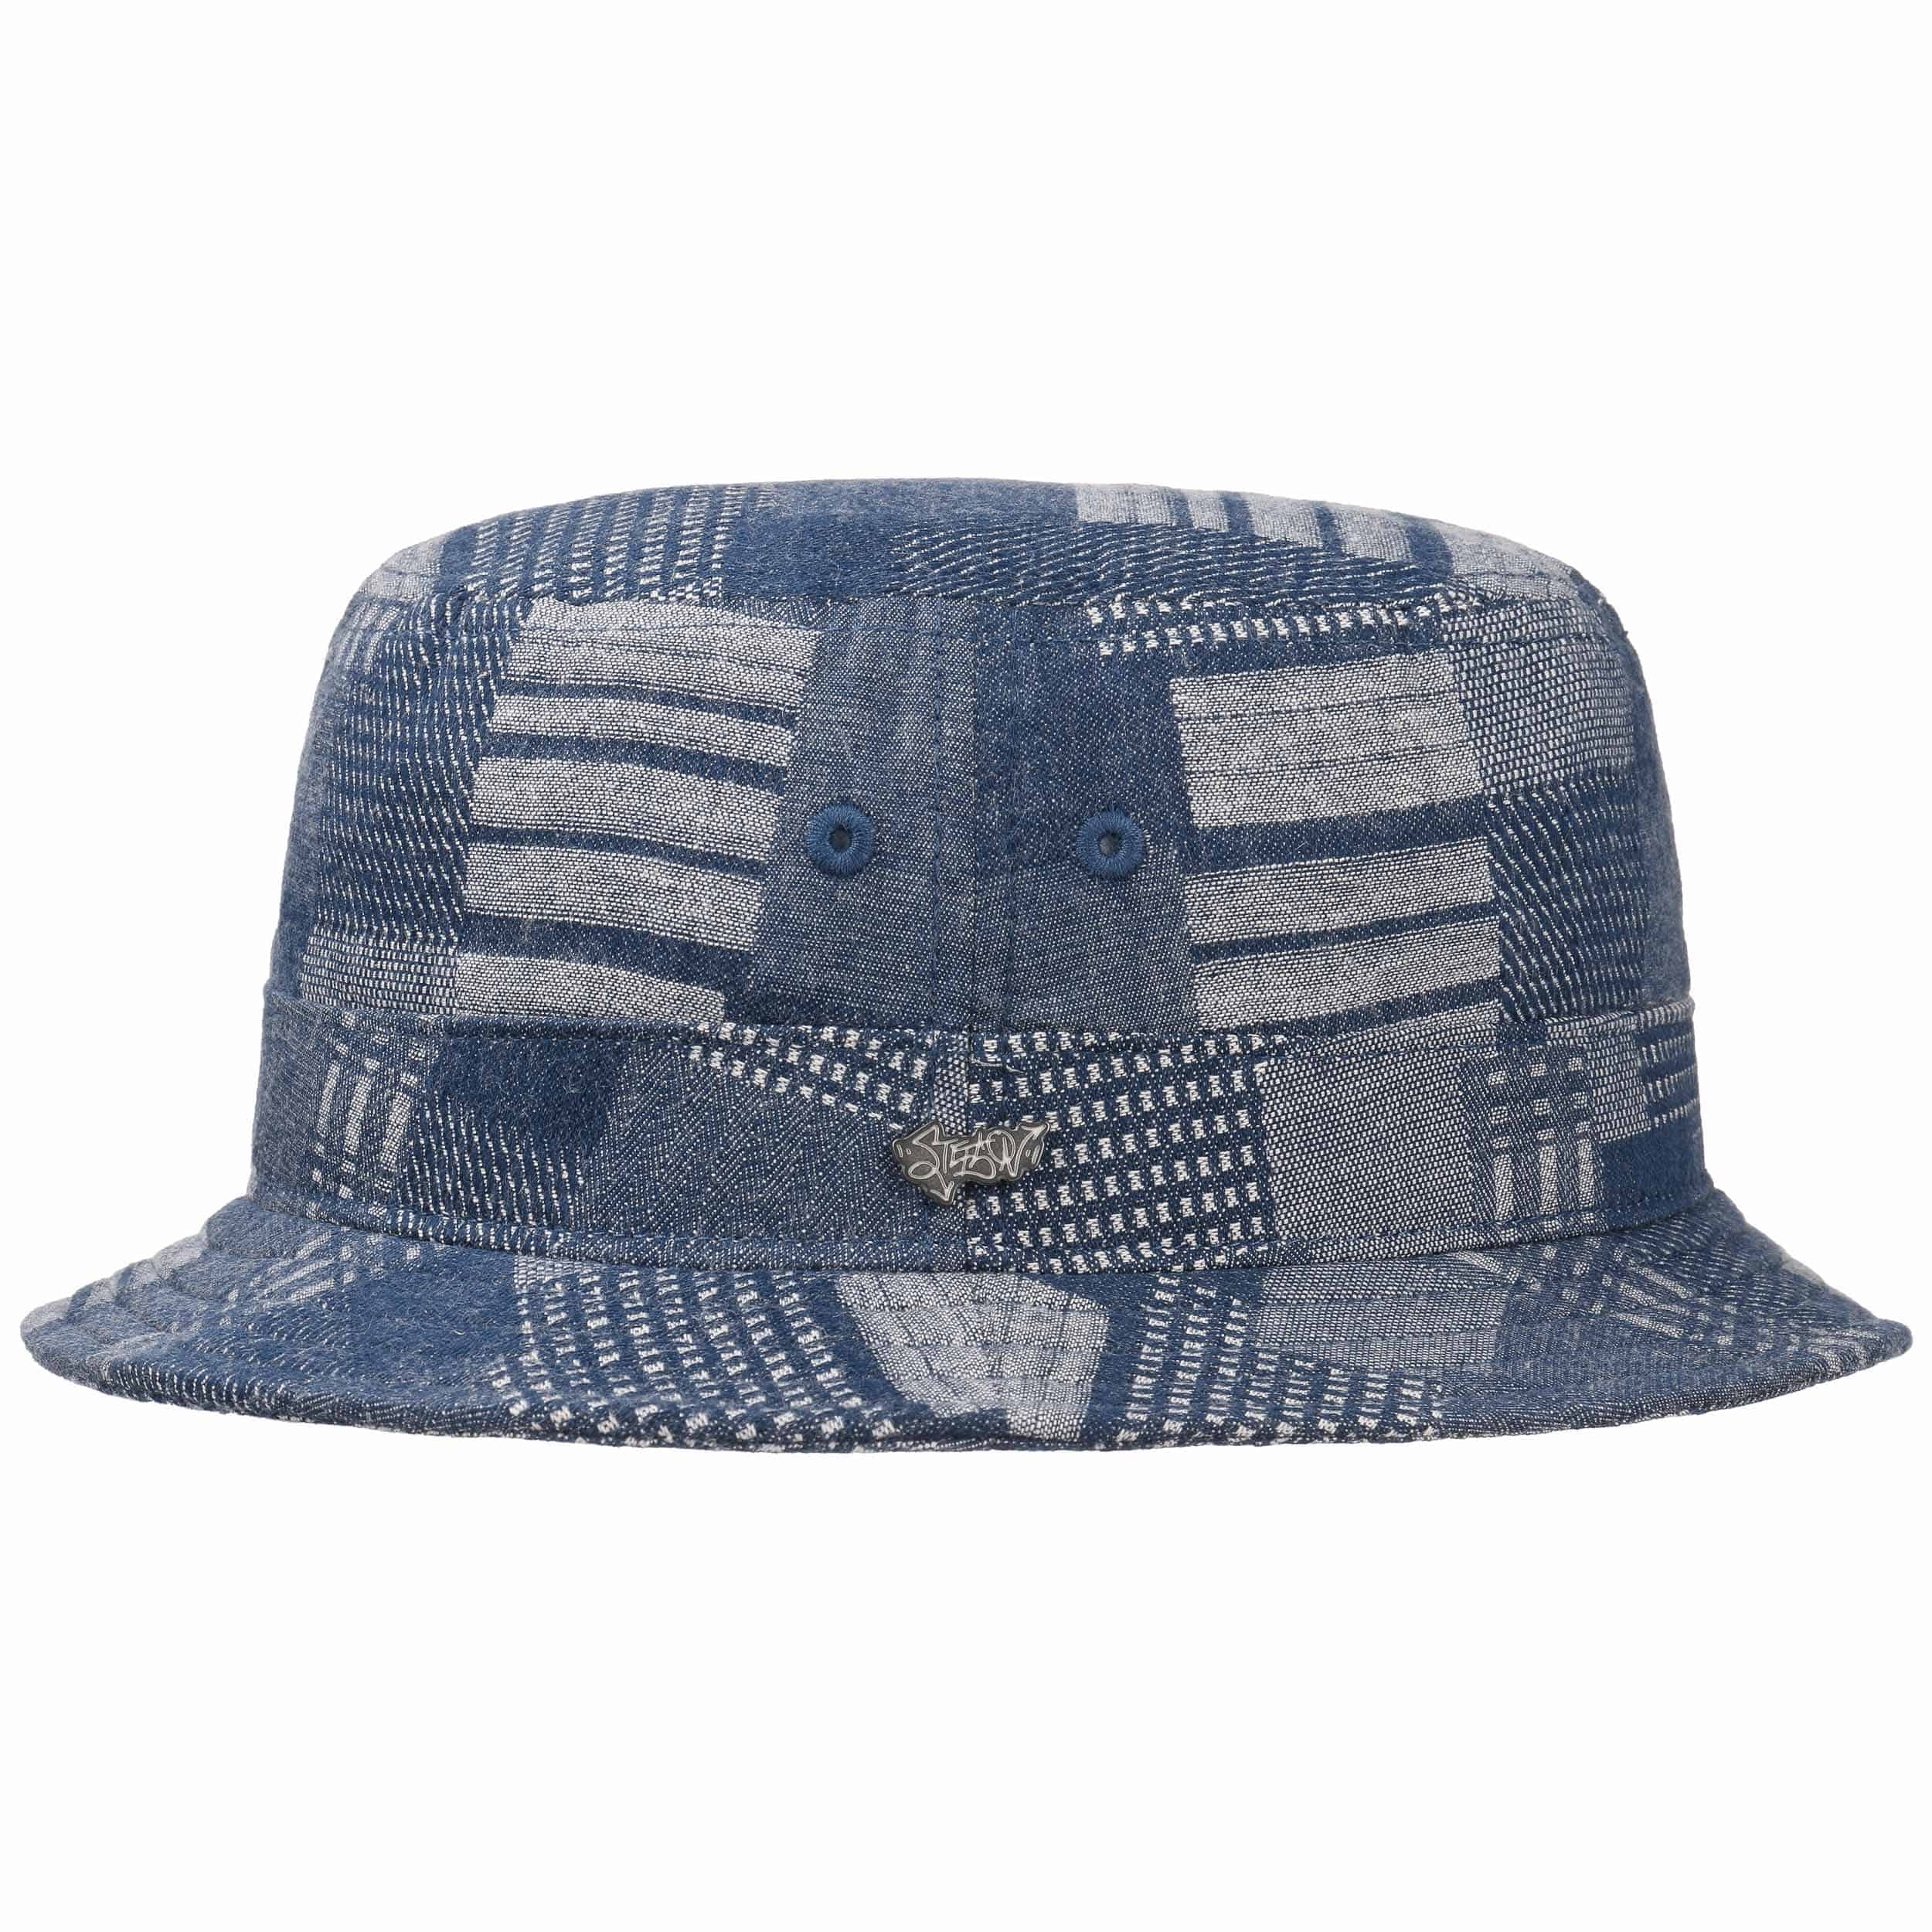 Denim Patchwork Bucket Hat. by Stetson 2a100ec525e